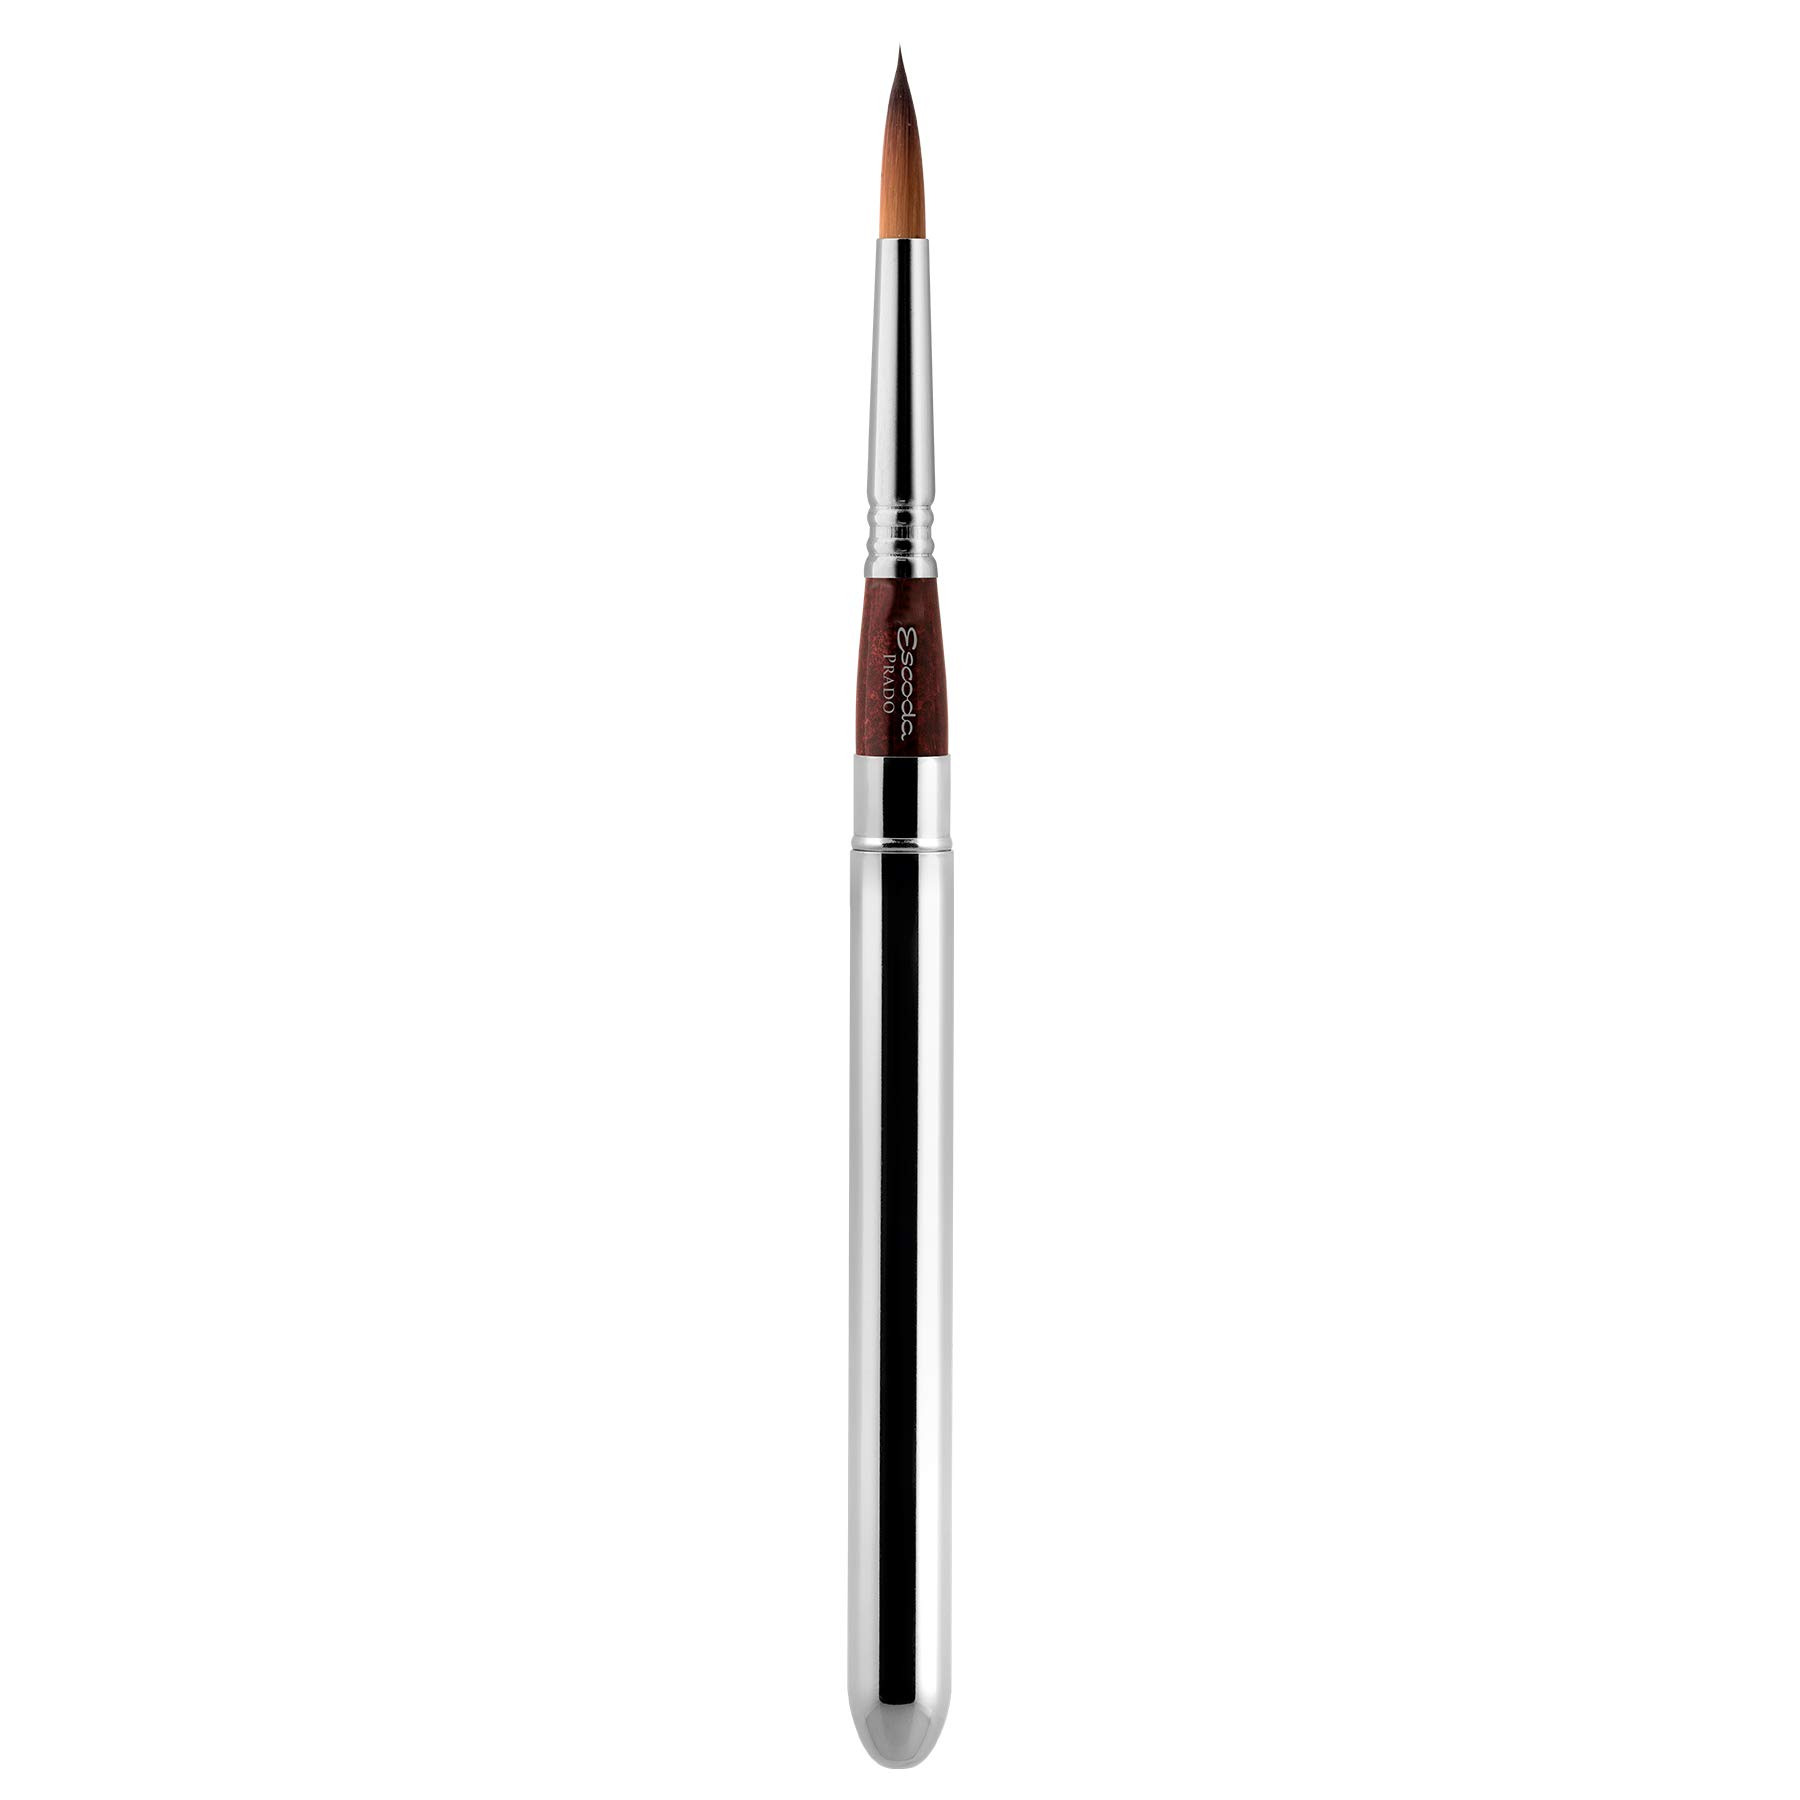 Speedball Art Products 1468-4 Escoda Prado Series Artist Watercolor & Acrylic Short Handle Travel Paint Brush, Size 4, Synthetic Sable